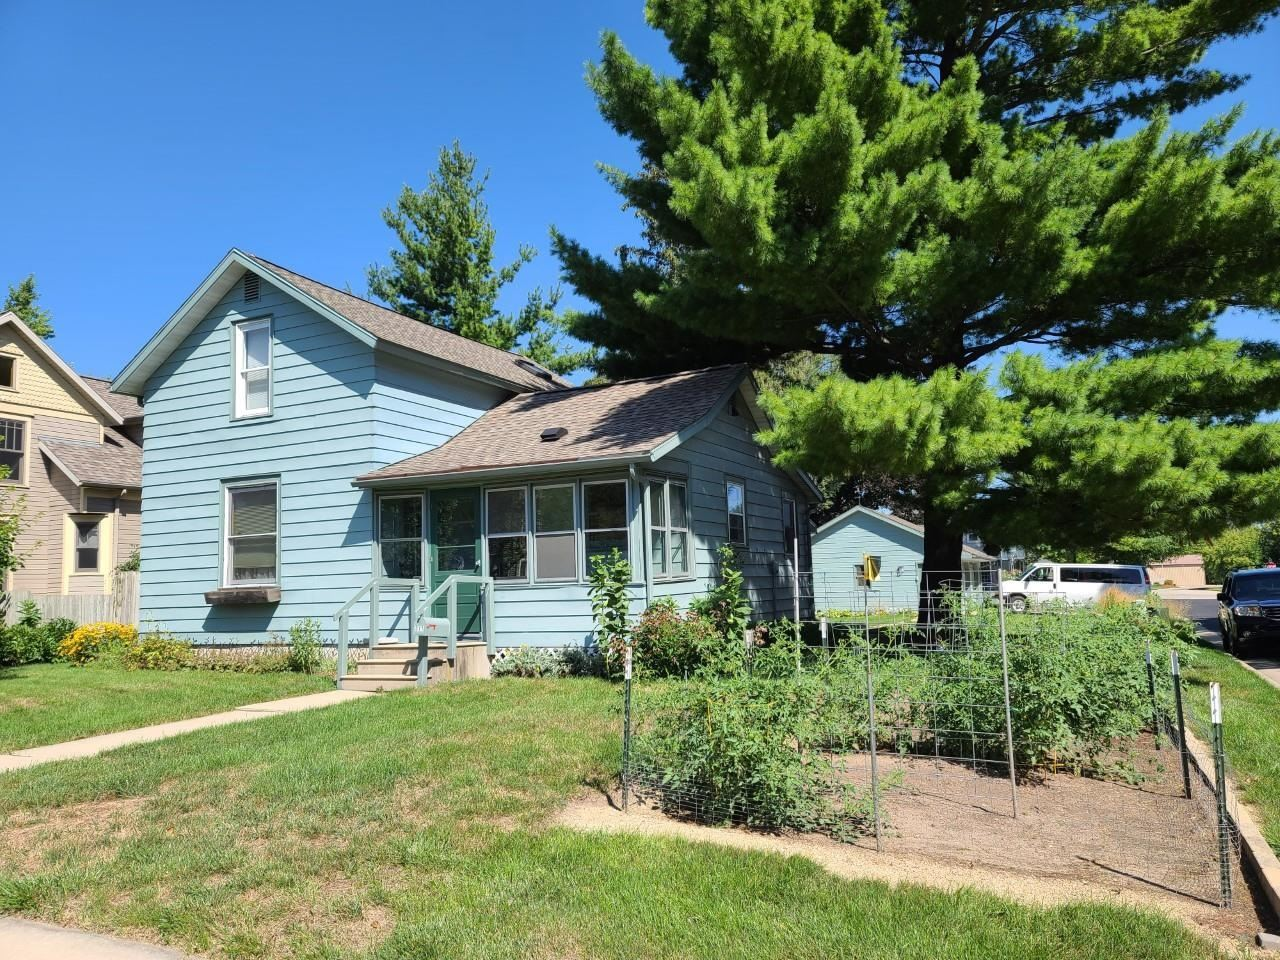 317 Grant St, Waunakee, WI 53597 - #: 1918341